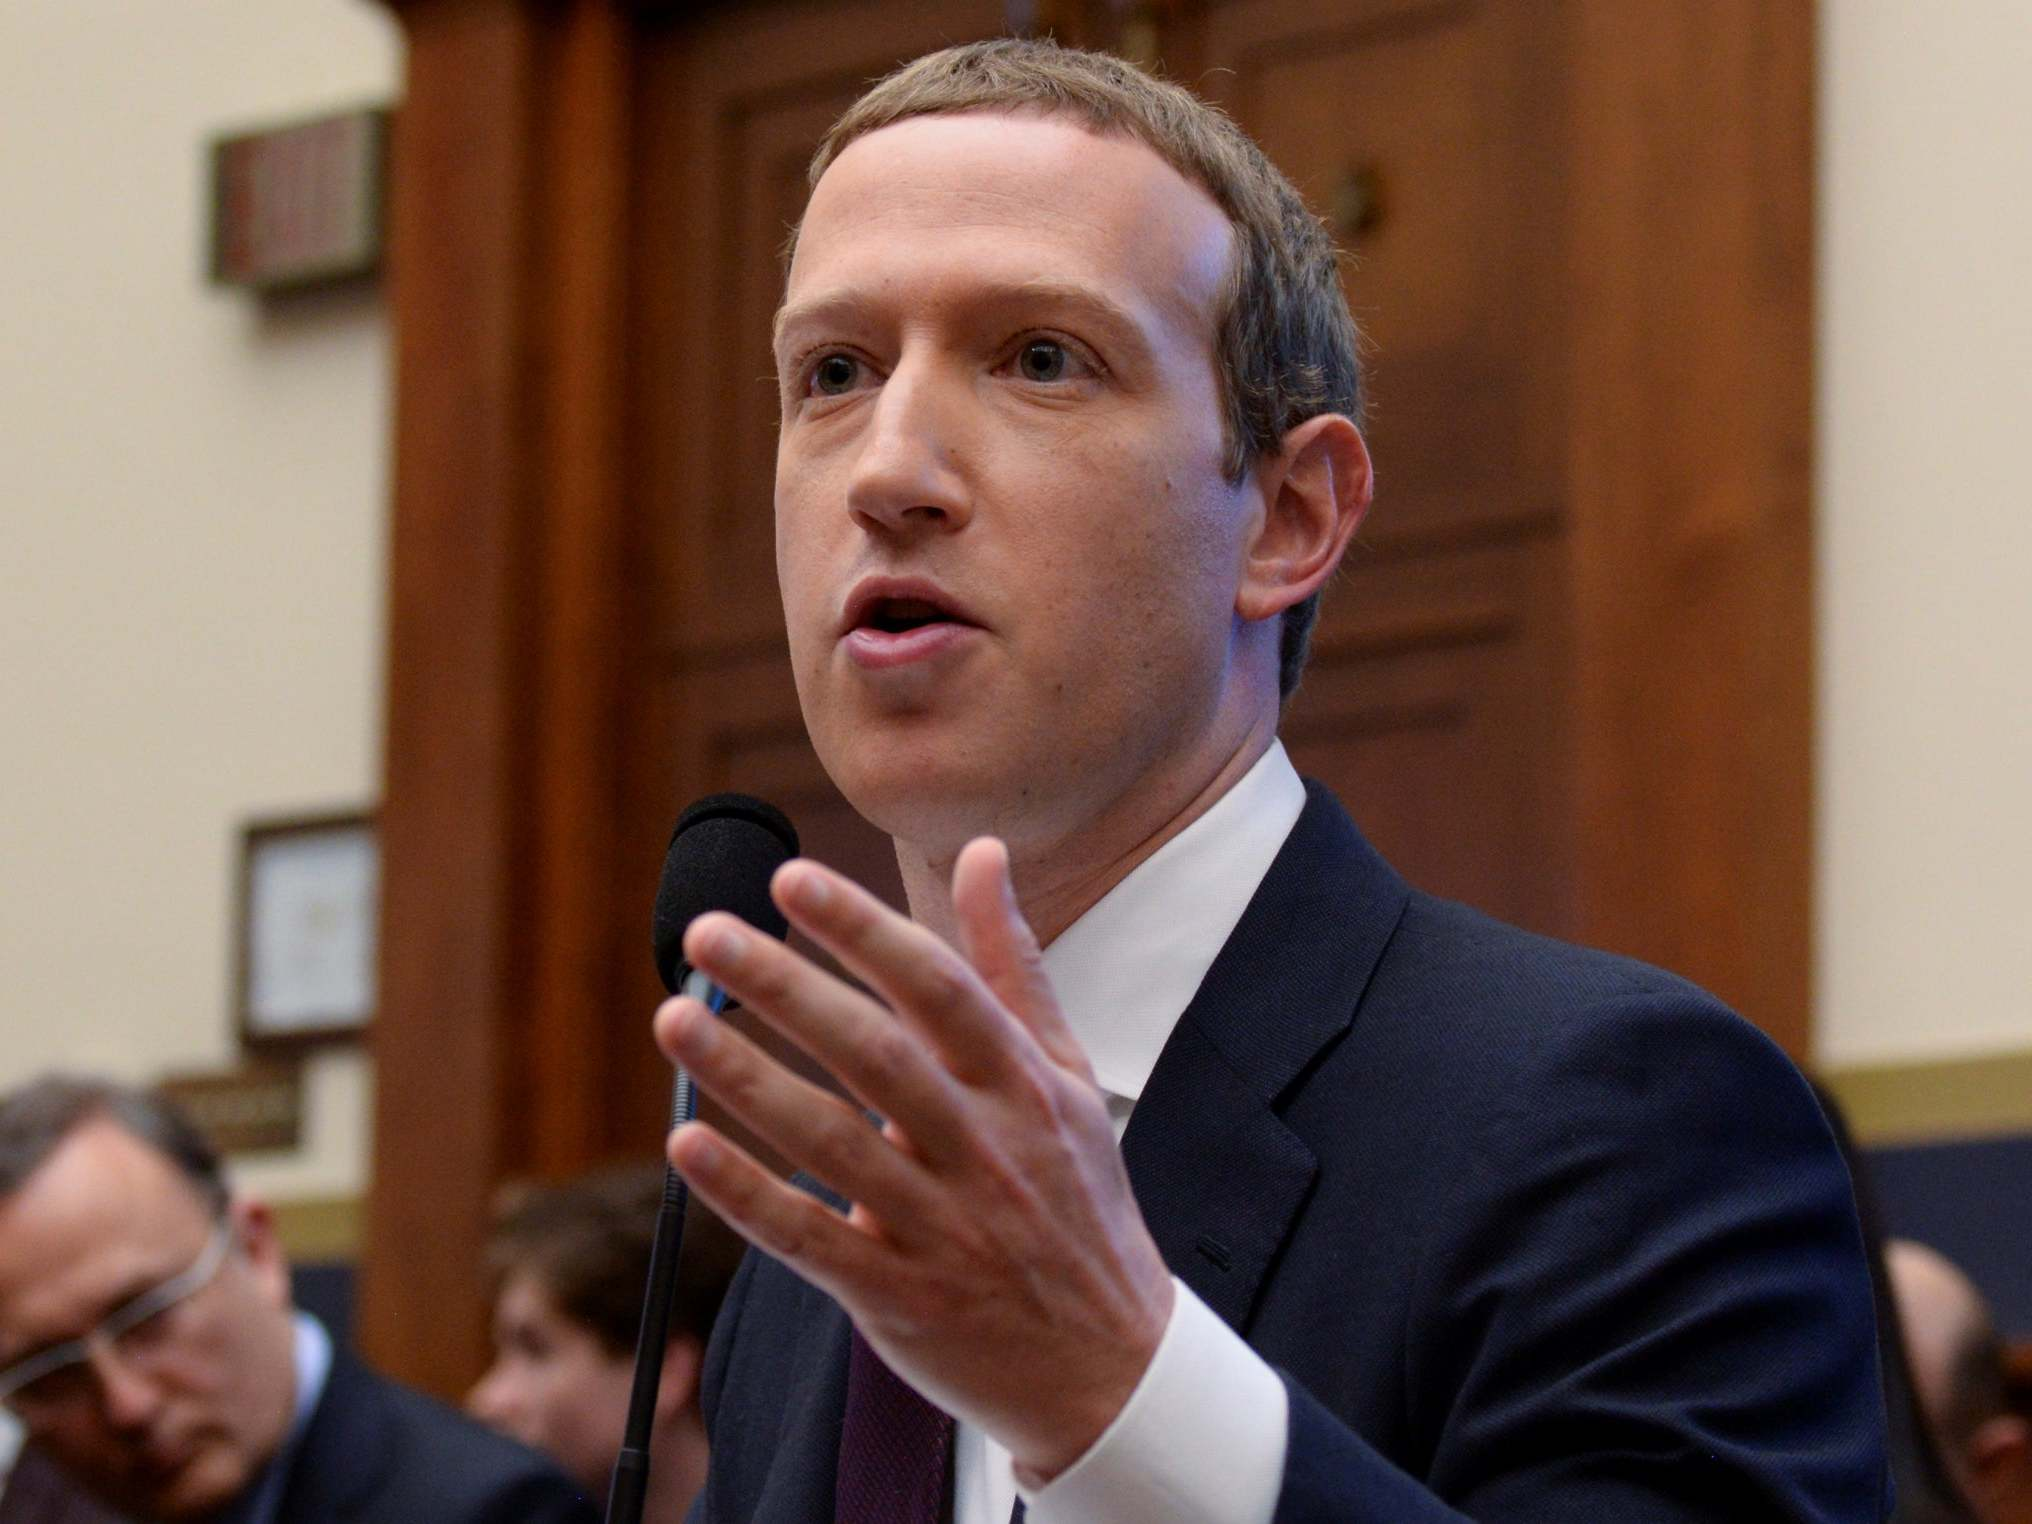 Zuckerberg stumbles over AOC's questions about white supremacy during Congress hearing